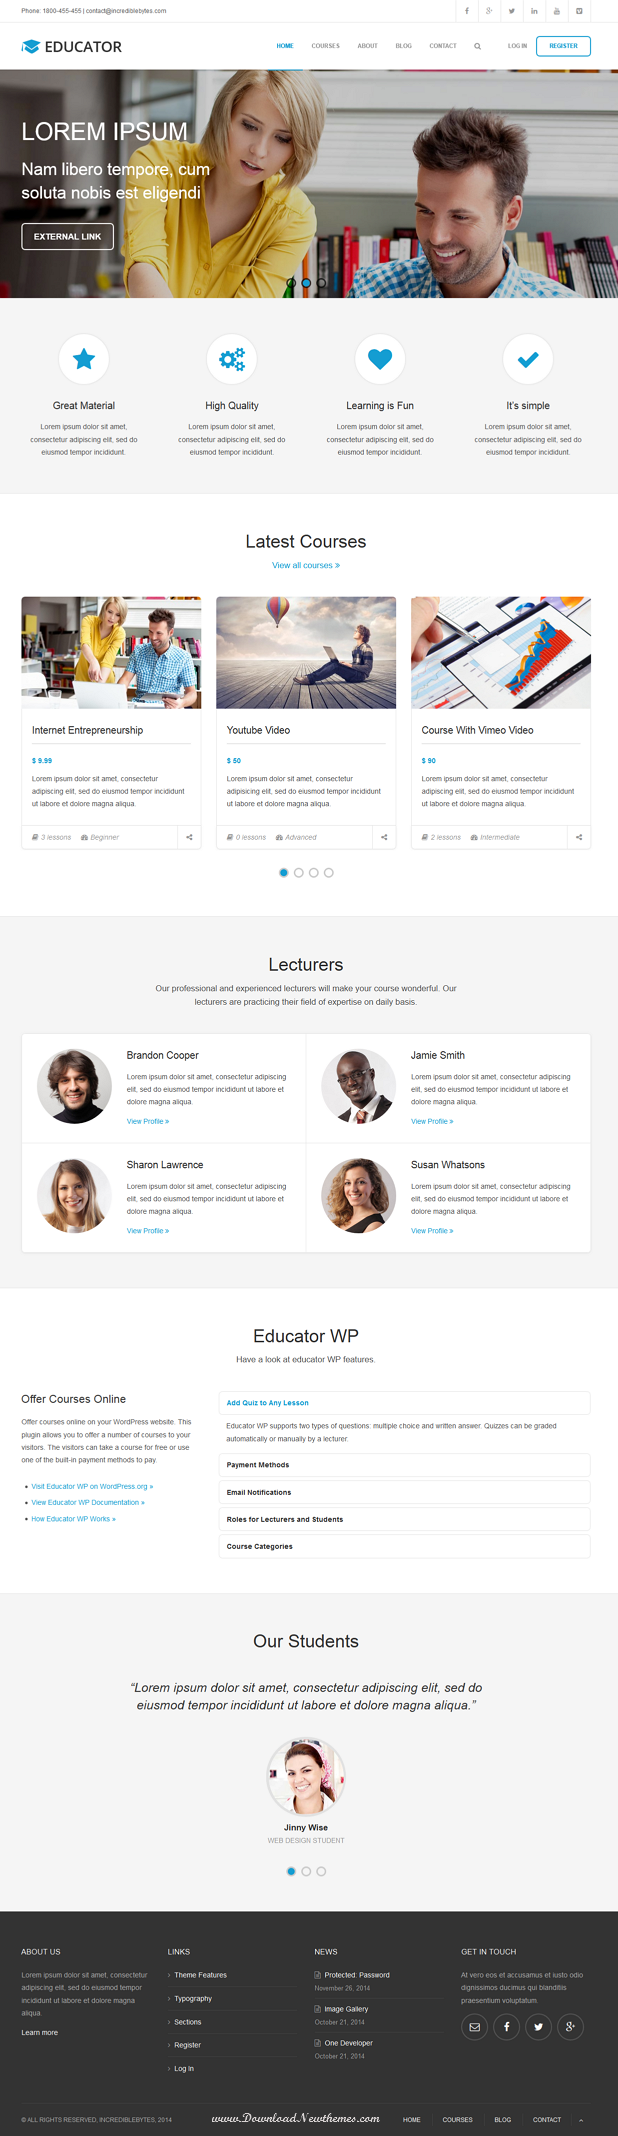 Educator WP is Learning Management System theme for WordPress. It is created for the Educator WP ...